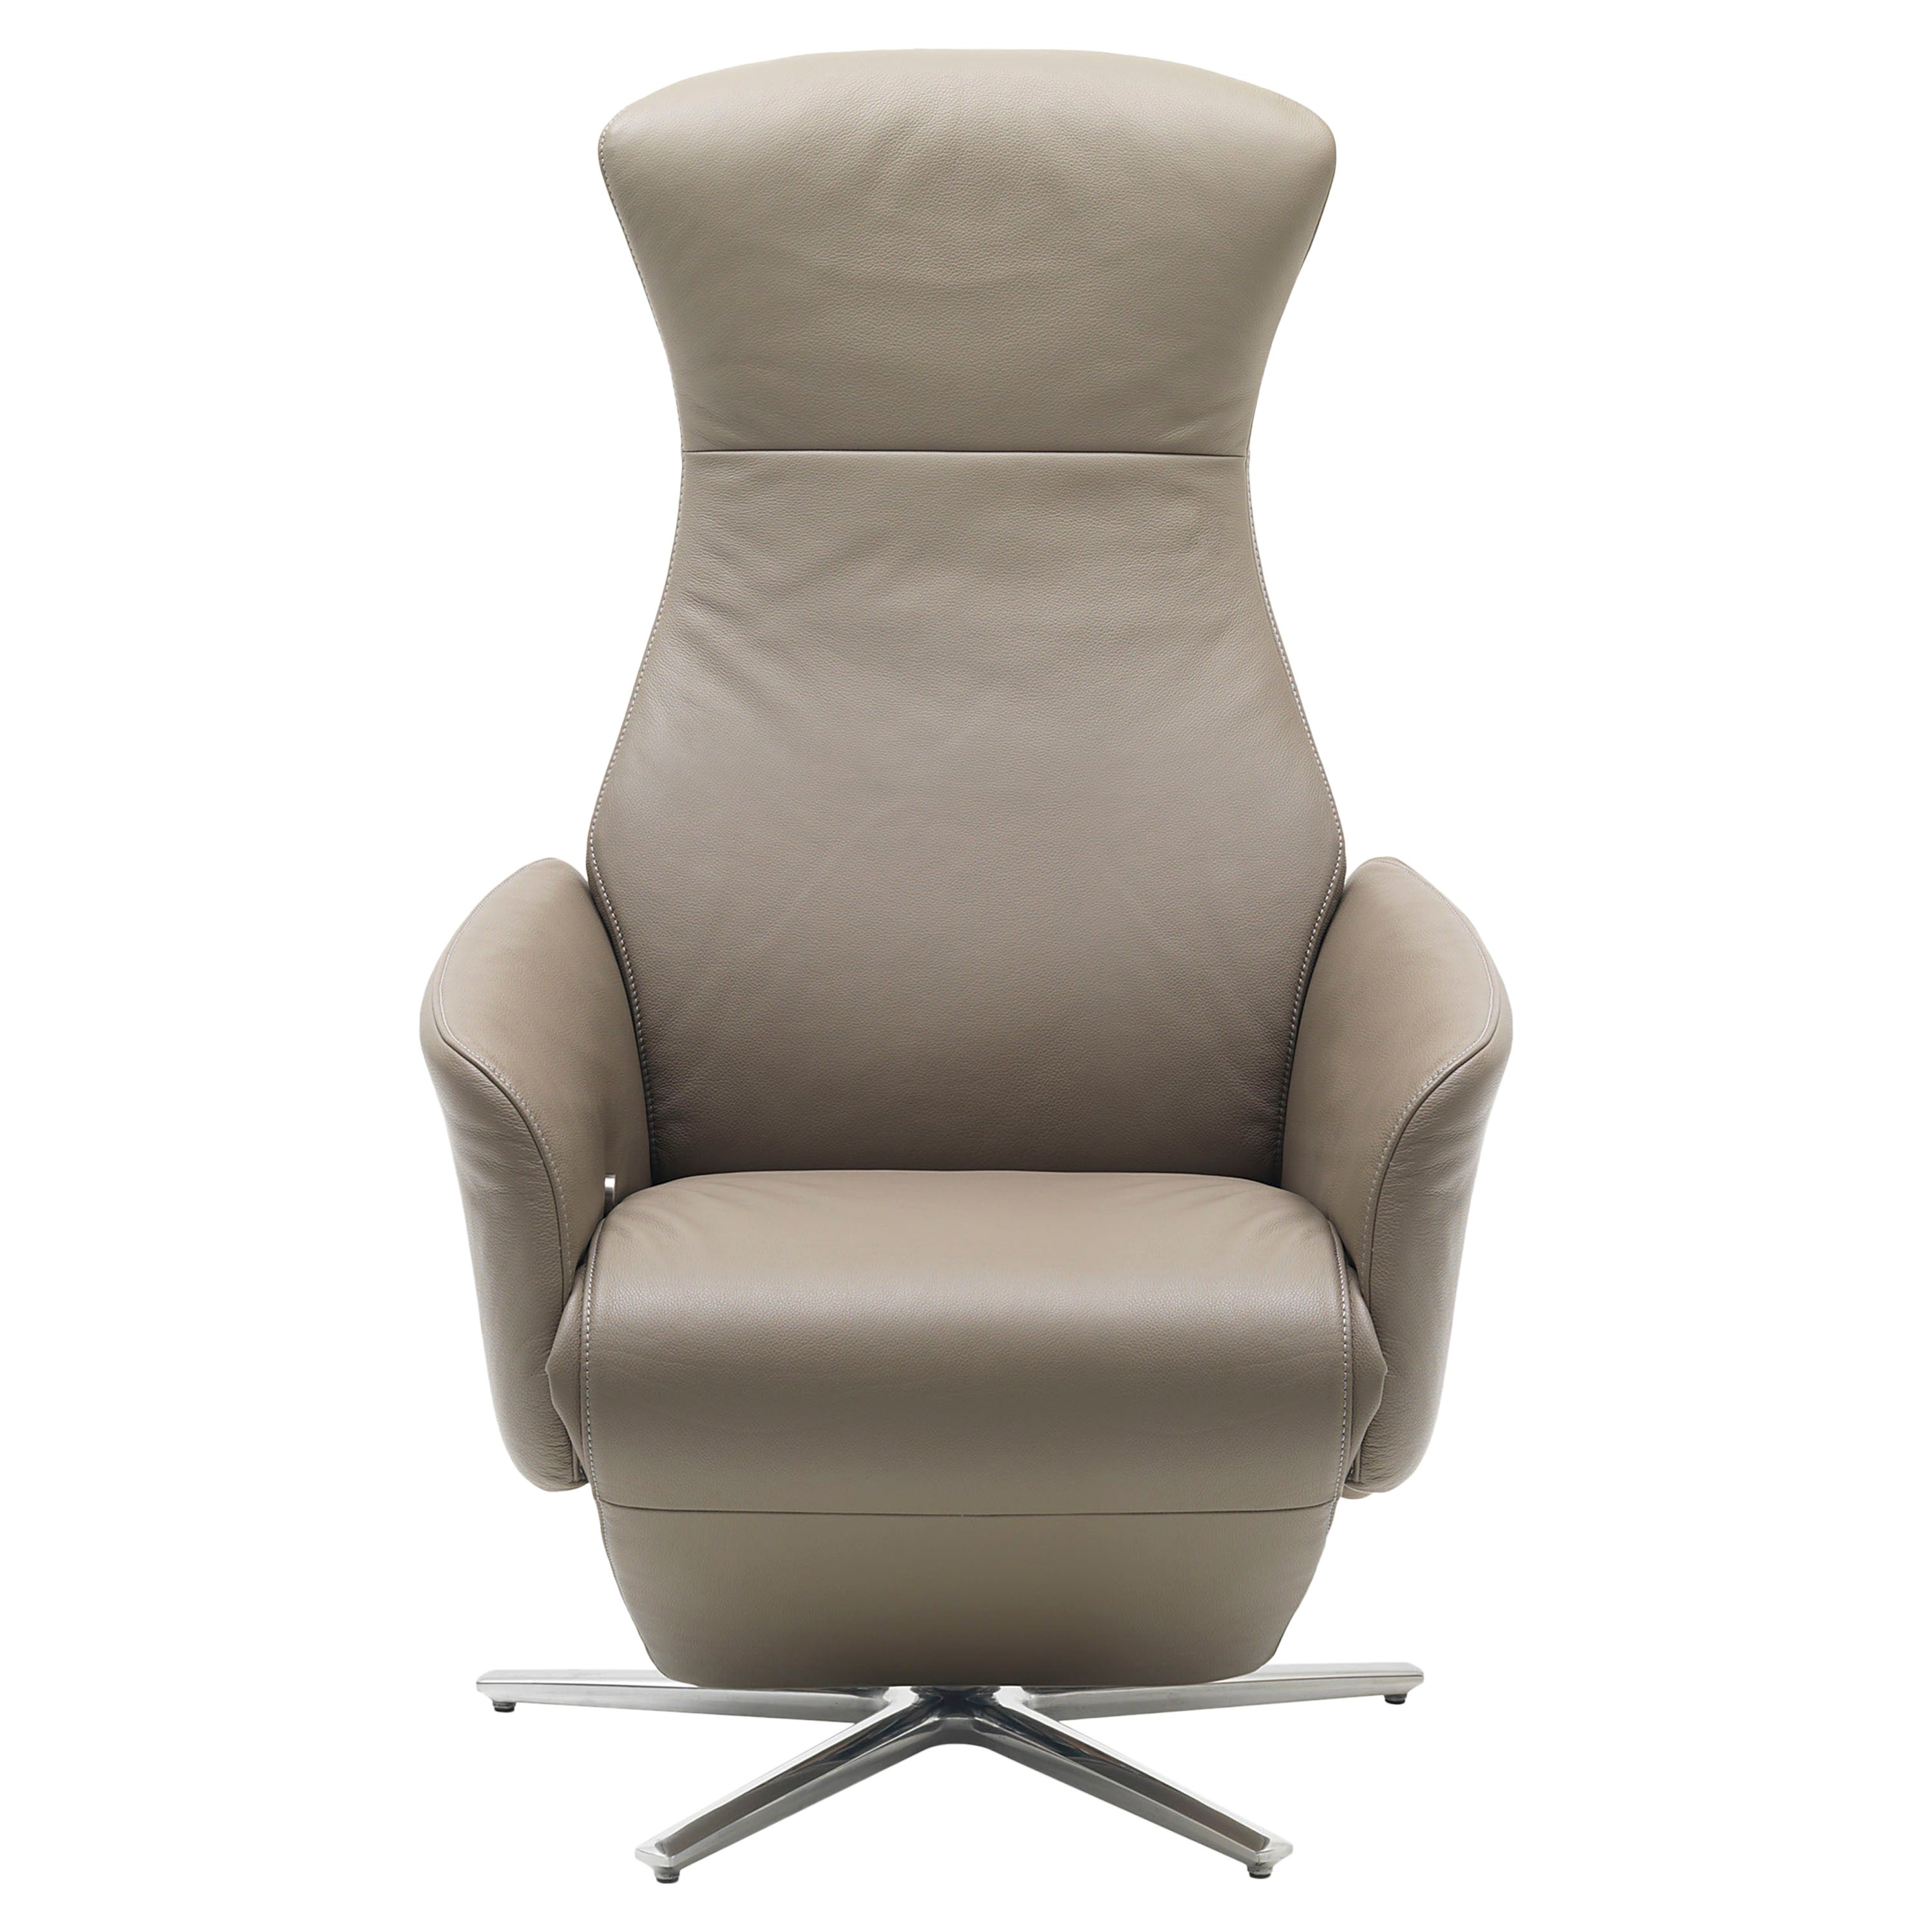 Cleo Adjustable Reclining Leather Easy Lounge Chair by FSM